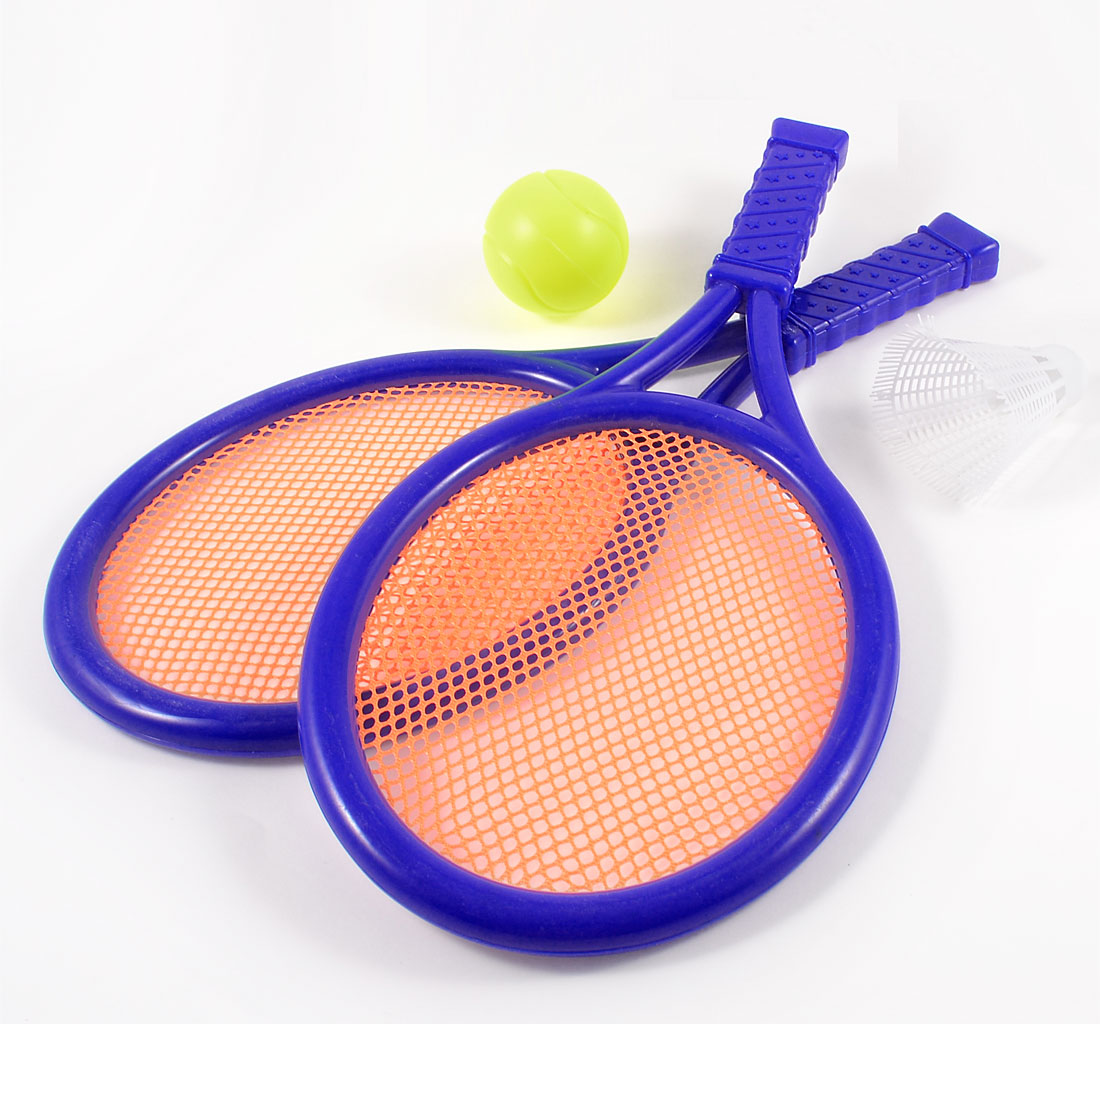 Orange Mesh Blue Plastic Frame Tennis Badminton Racket Toy Gift for Children